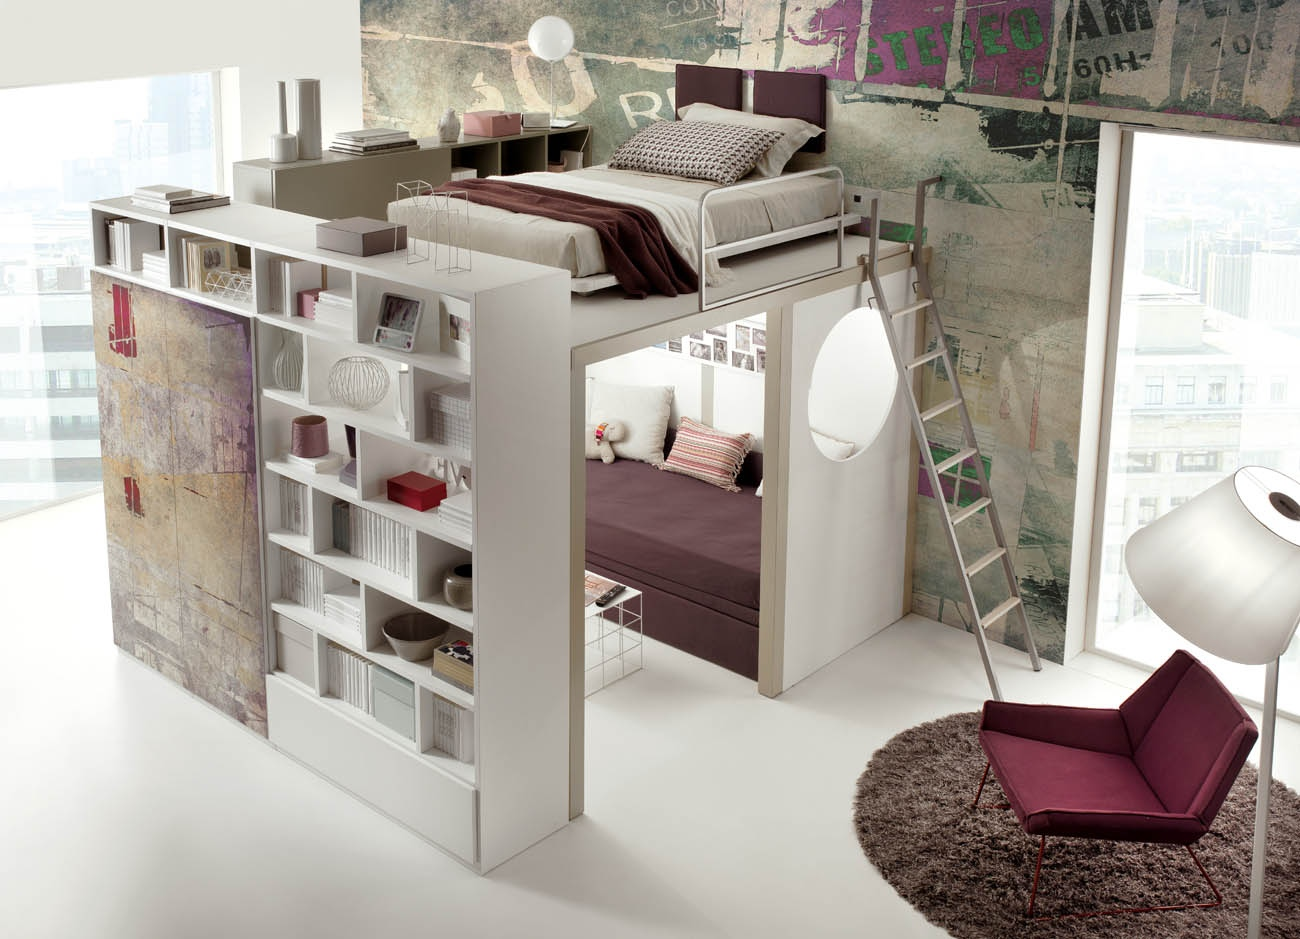 Interior Designing Colleges In Hyderabad